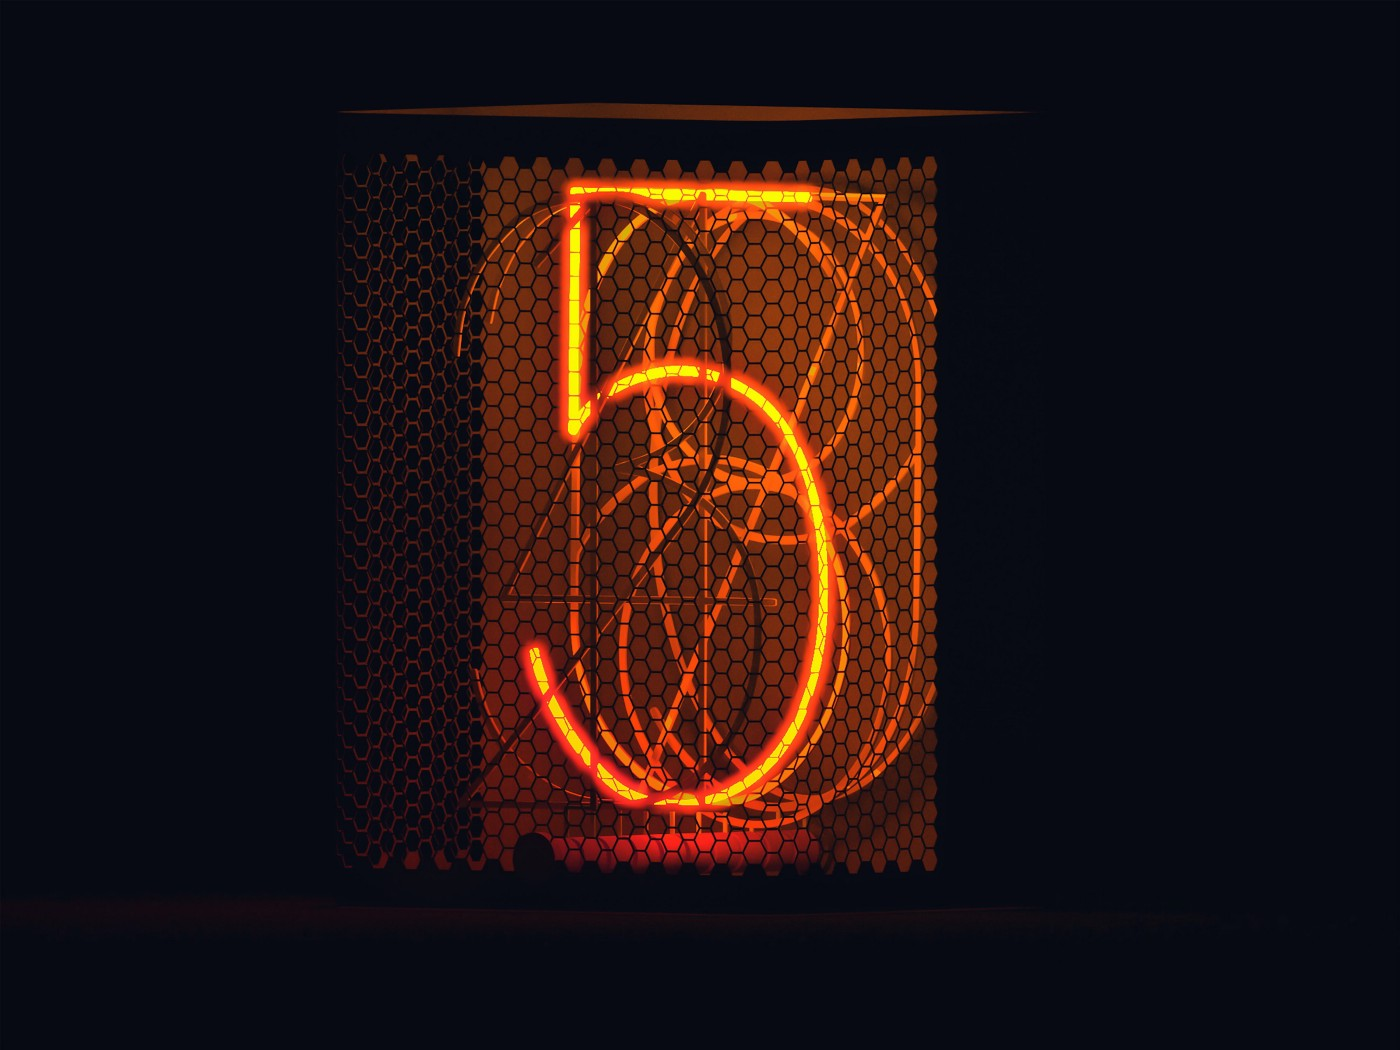 Lit sign with the number 5